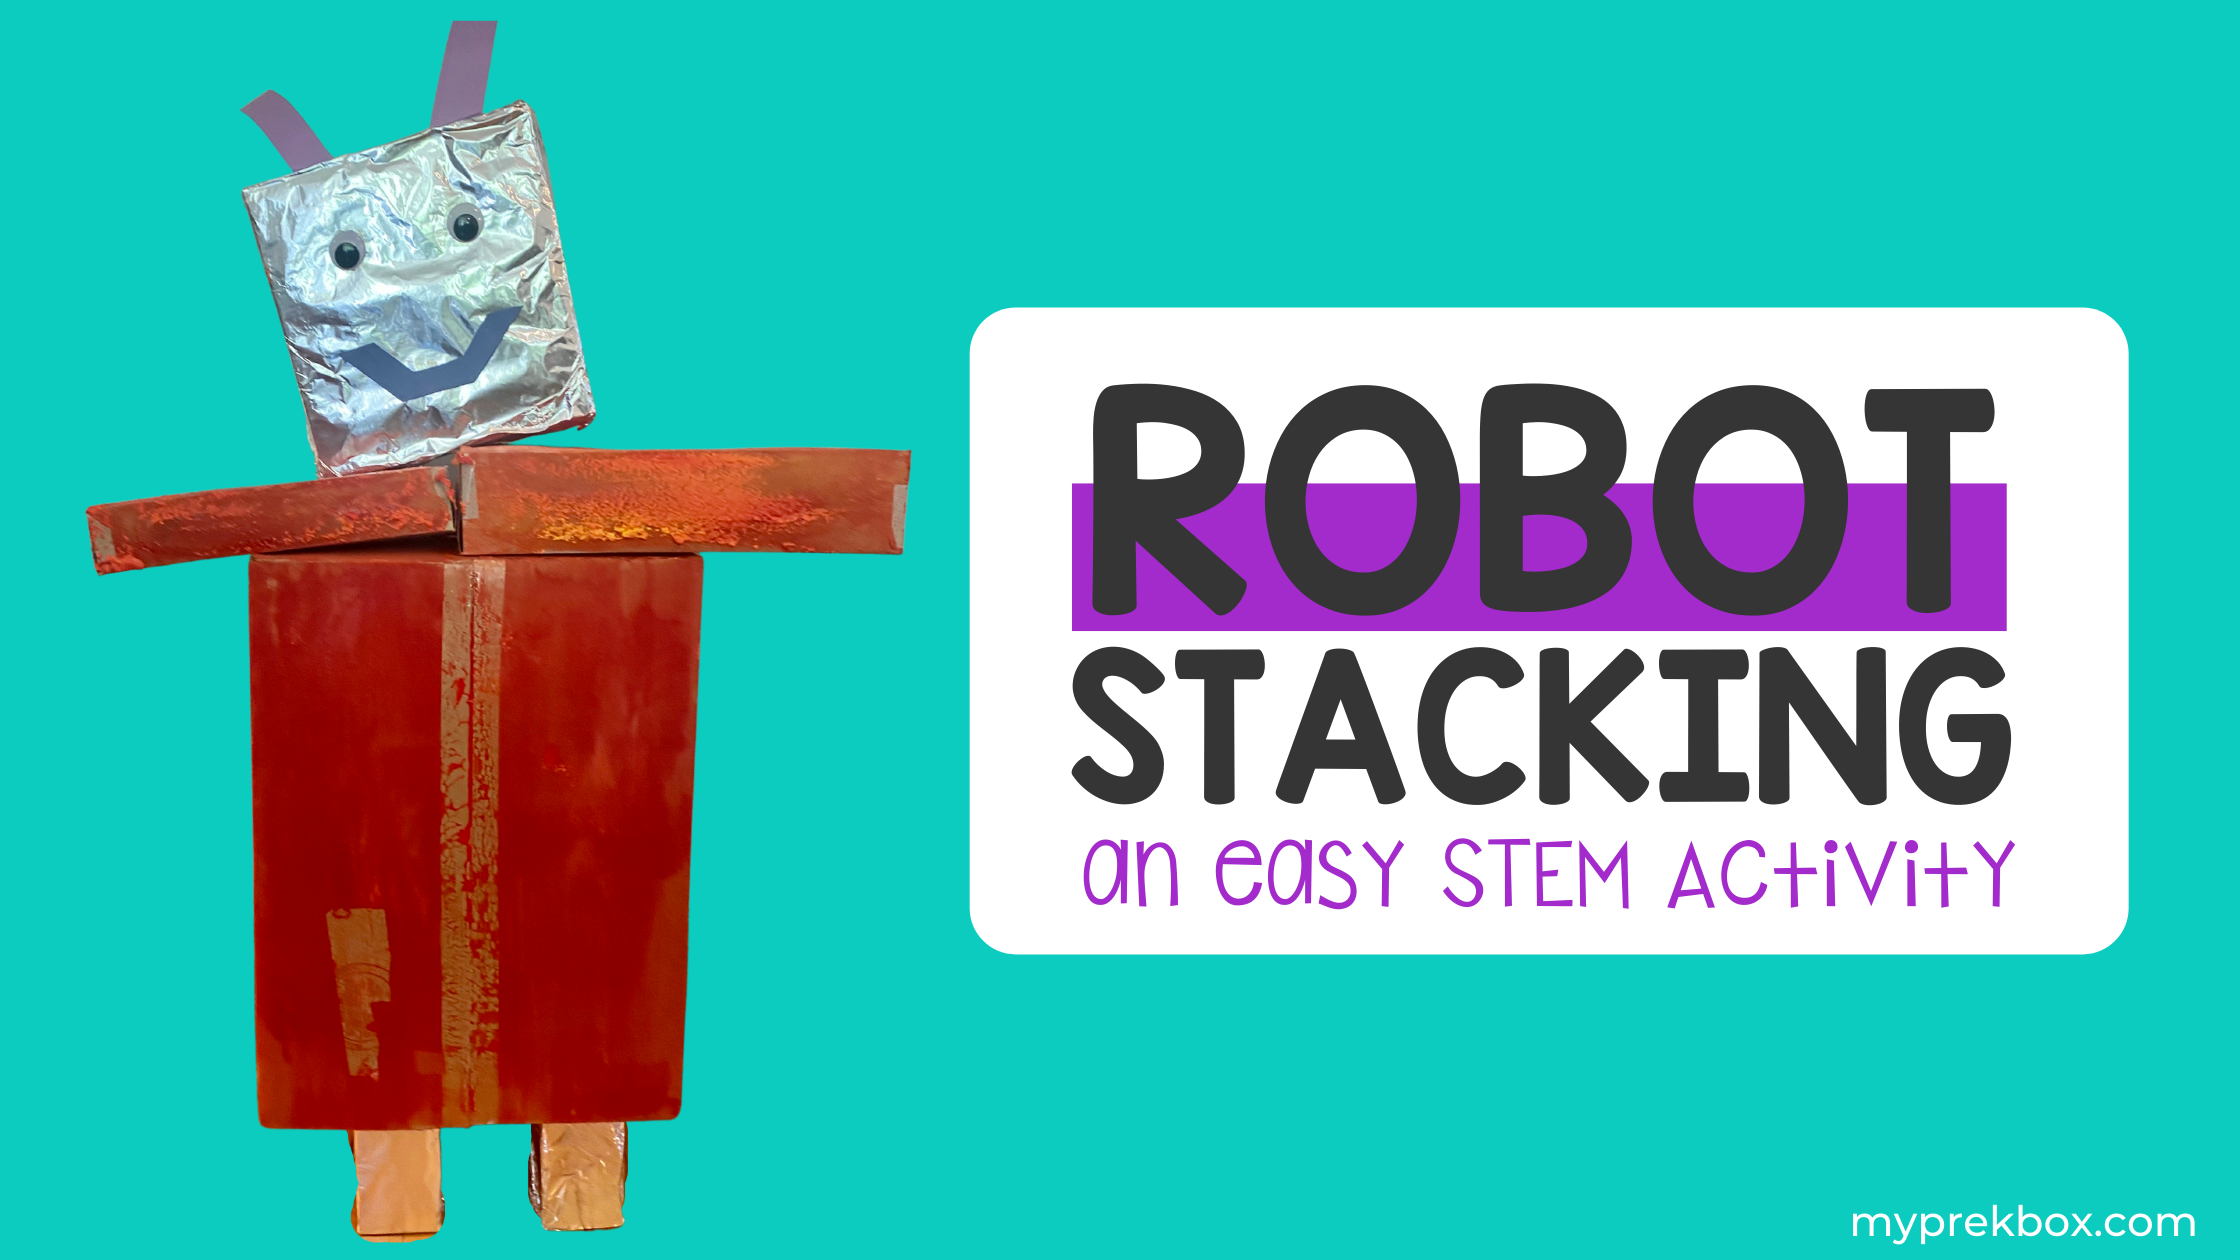 Robot Stacking — An Easy STEM Activity for Preschoolers